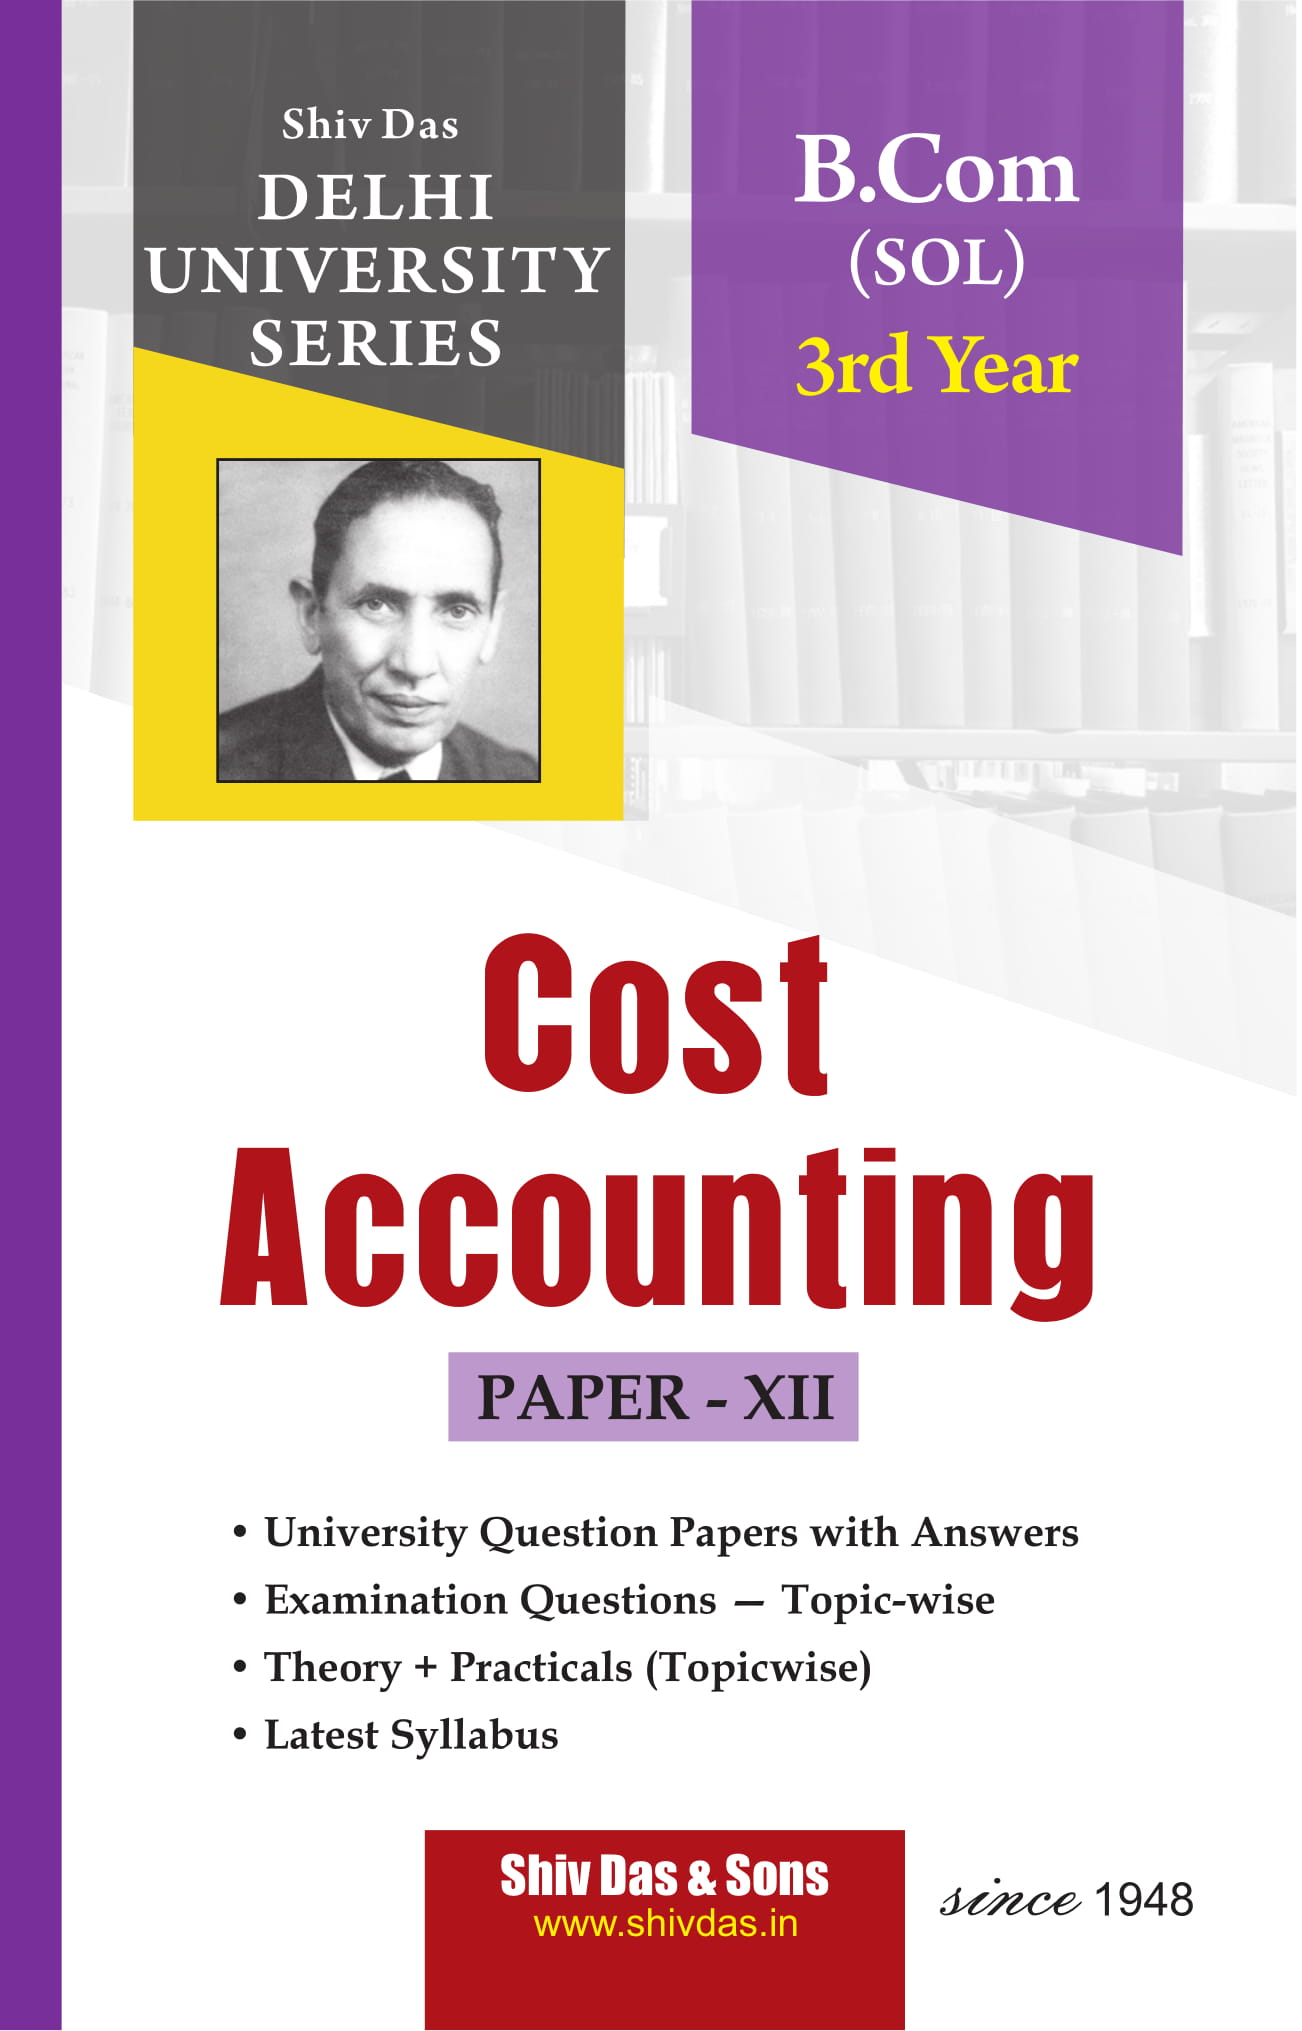 Cost Accounting (Eng. Medium) for B.Com 3rd Year SOL/External